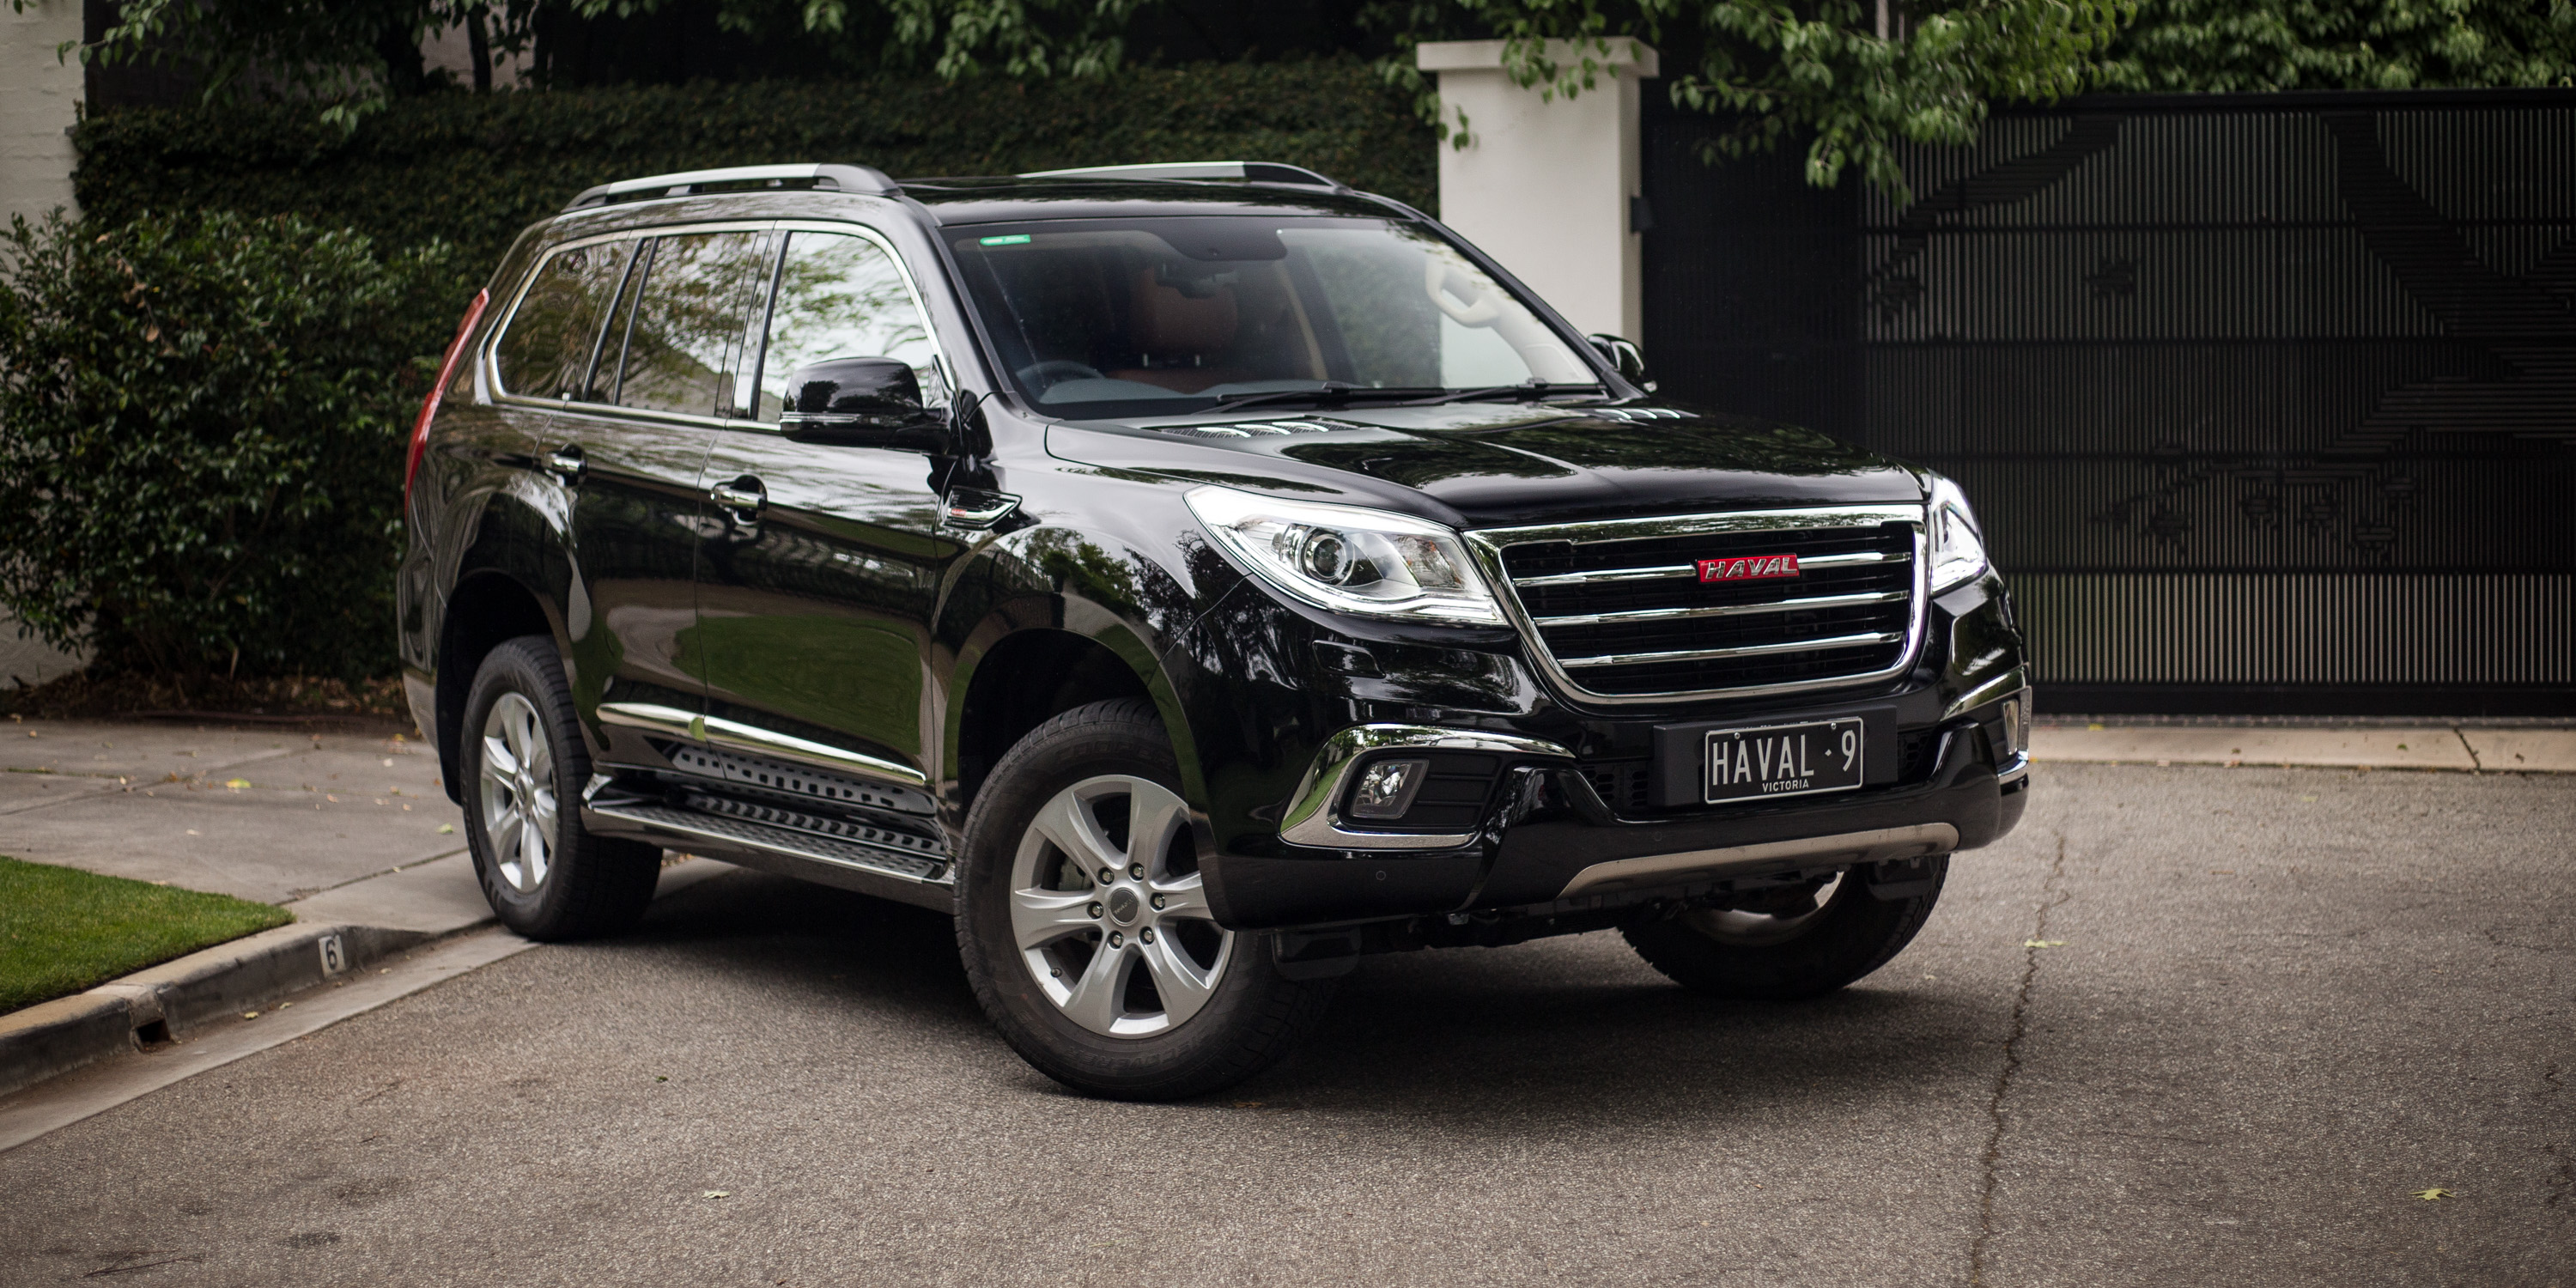 2017 Toyota C Hr Small Suv To Get Turbo Power 39705 additionally McLaren F1 GTR furthermore Toyota Landcruiser Vdj79 Dual Cab 4 5l V8 Turbo Diesel Ute in addition Origin Of The Holden Ss Review besides Index. on holden commodore